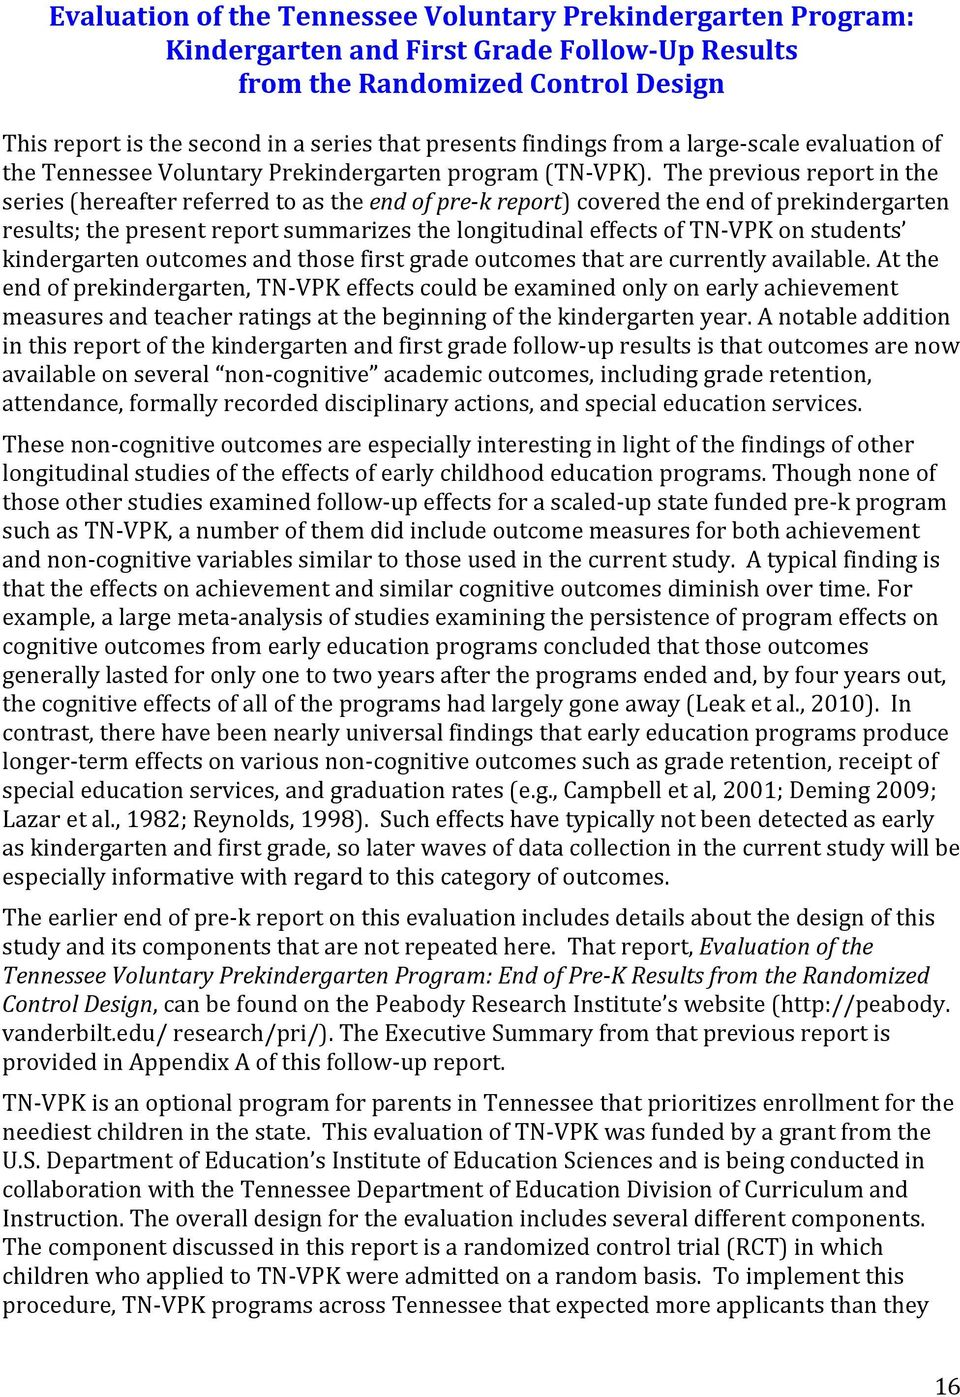 The previous report in the series (hereafter referred to as the end of pre k report) covered the end of prekindergarten results; the present report summarizes the longitudinal effects of TN VPK on